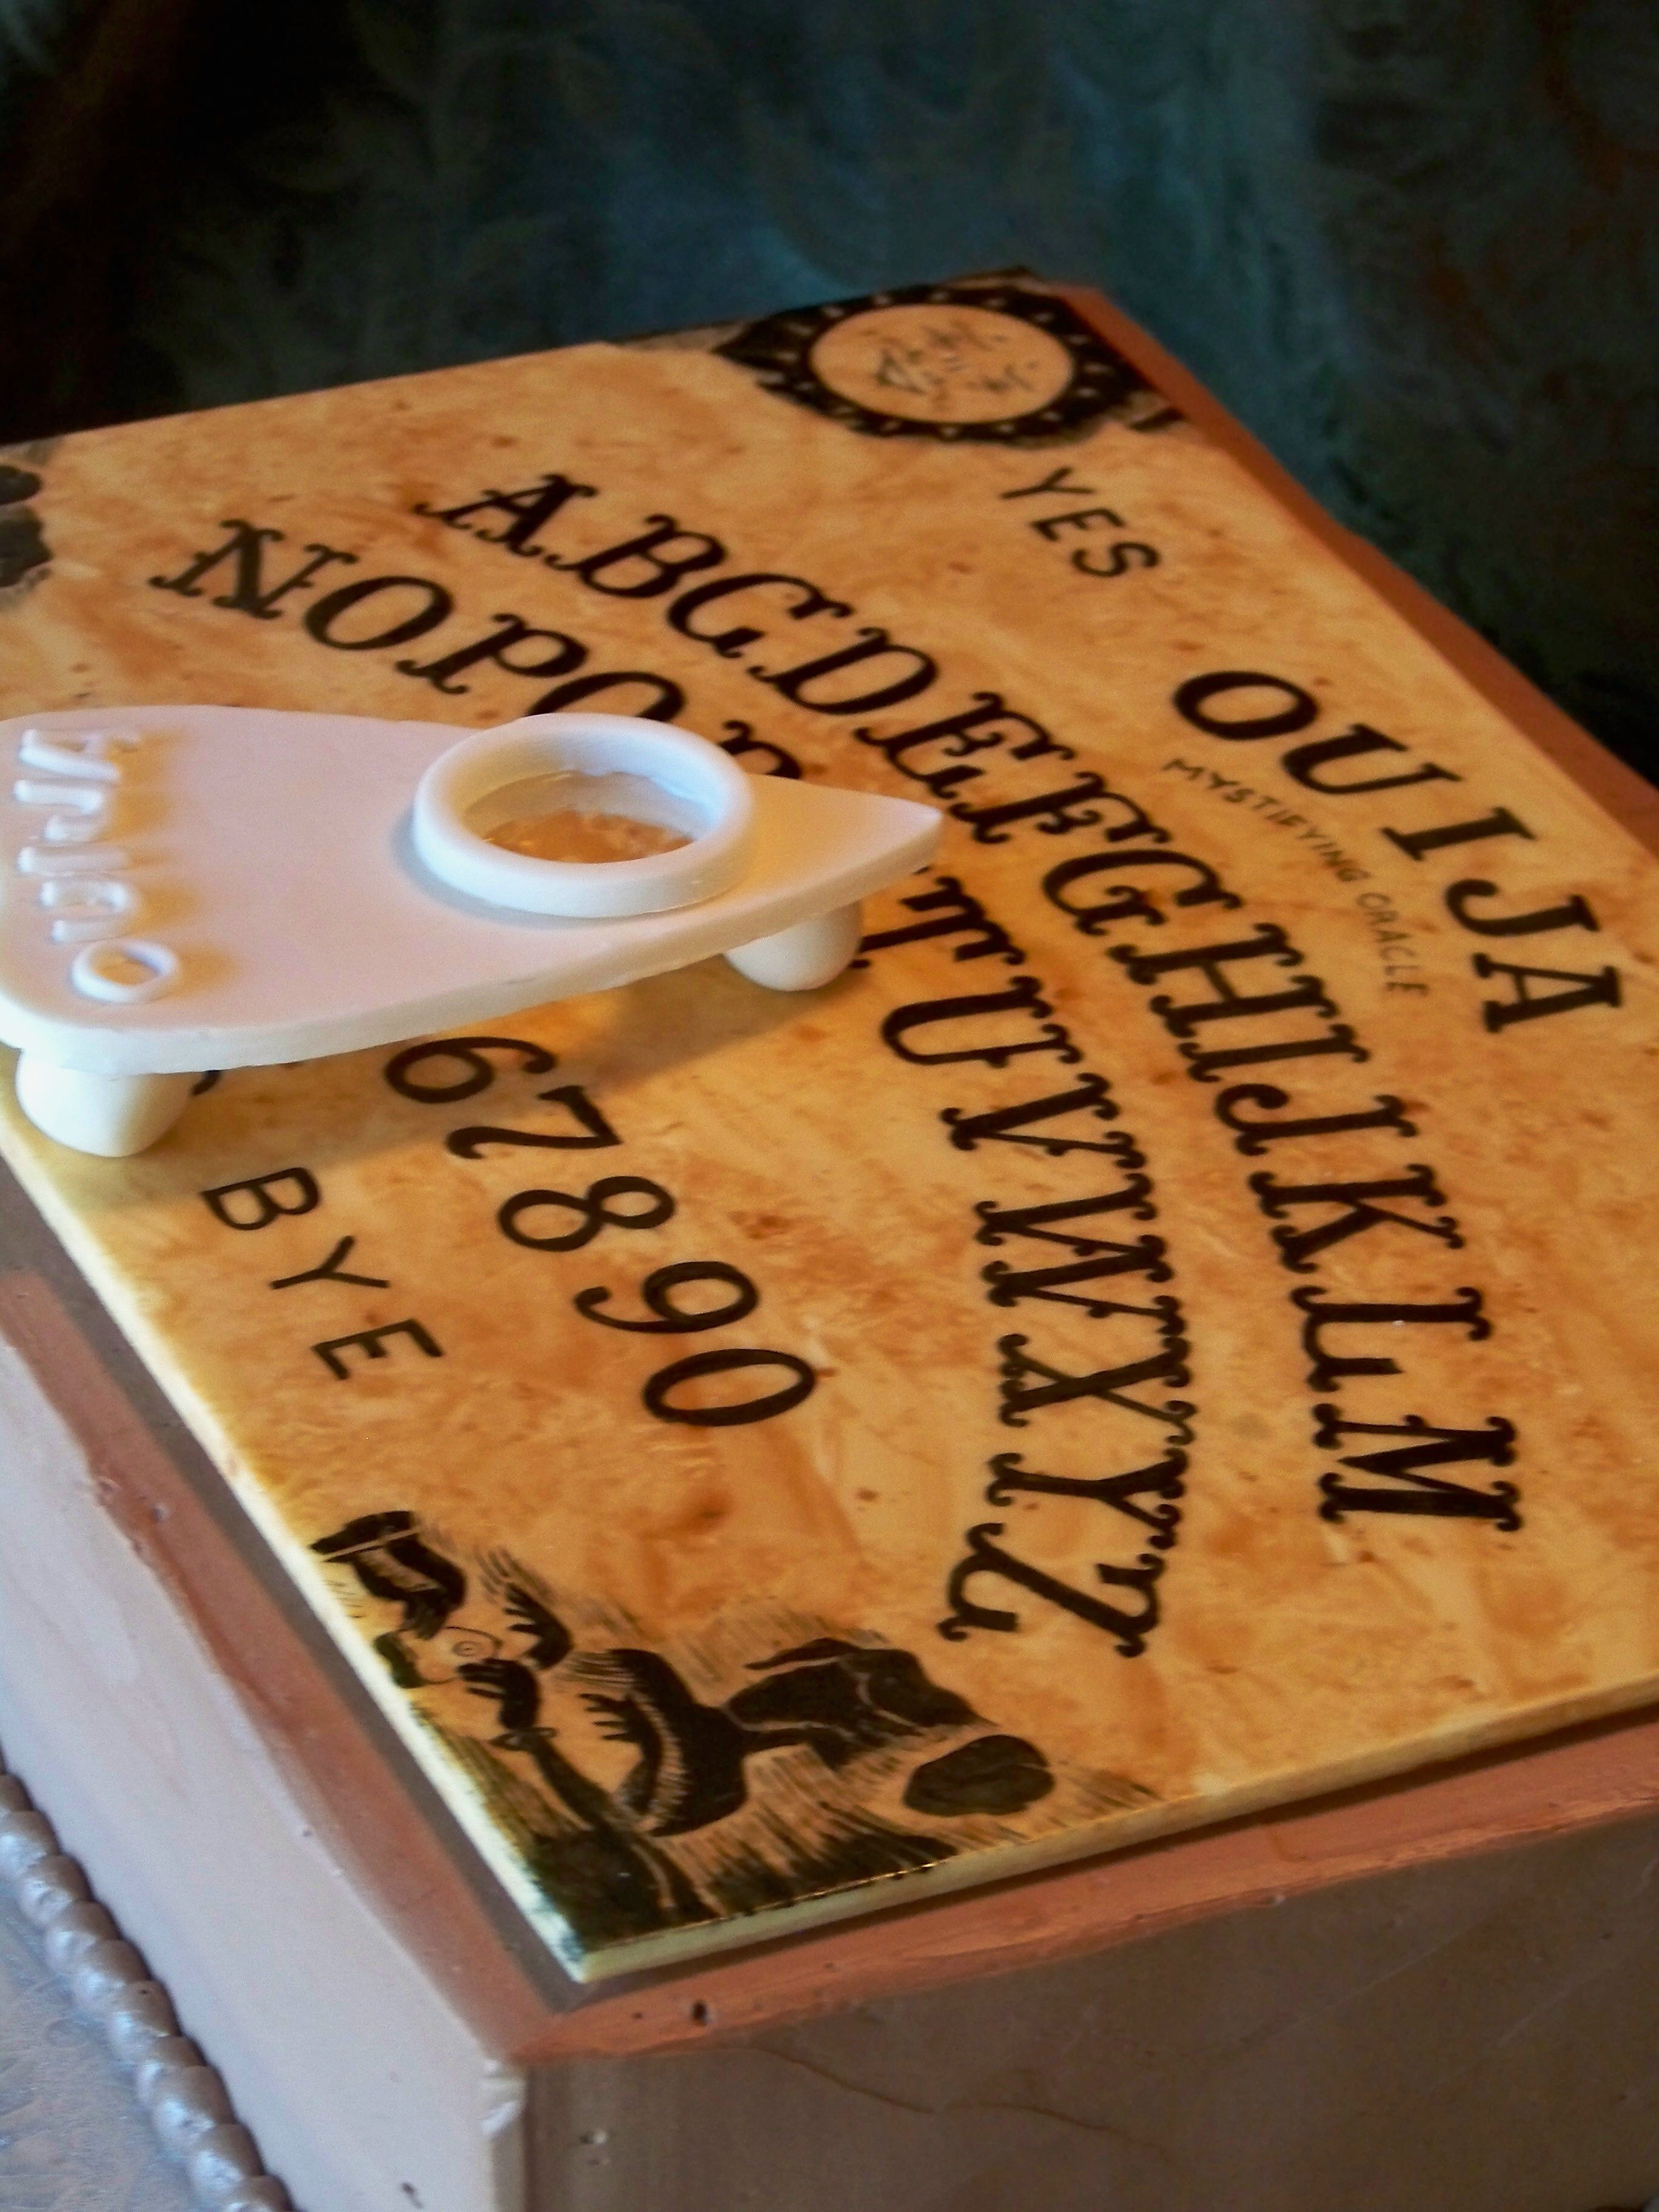 Ouija Board Cake Not So Much Shaped As Handpainted Details To Look Realistic